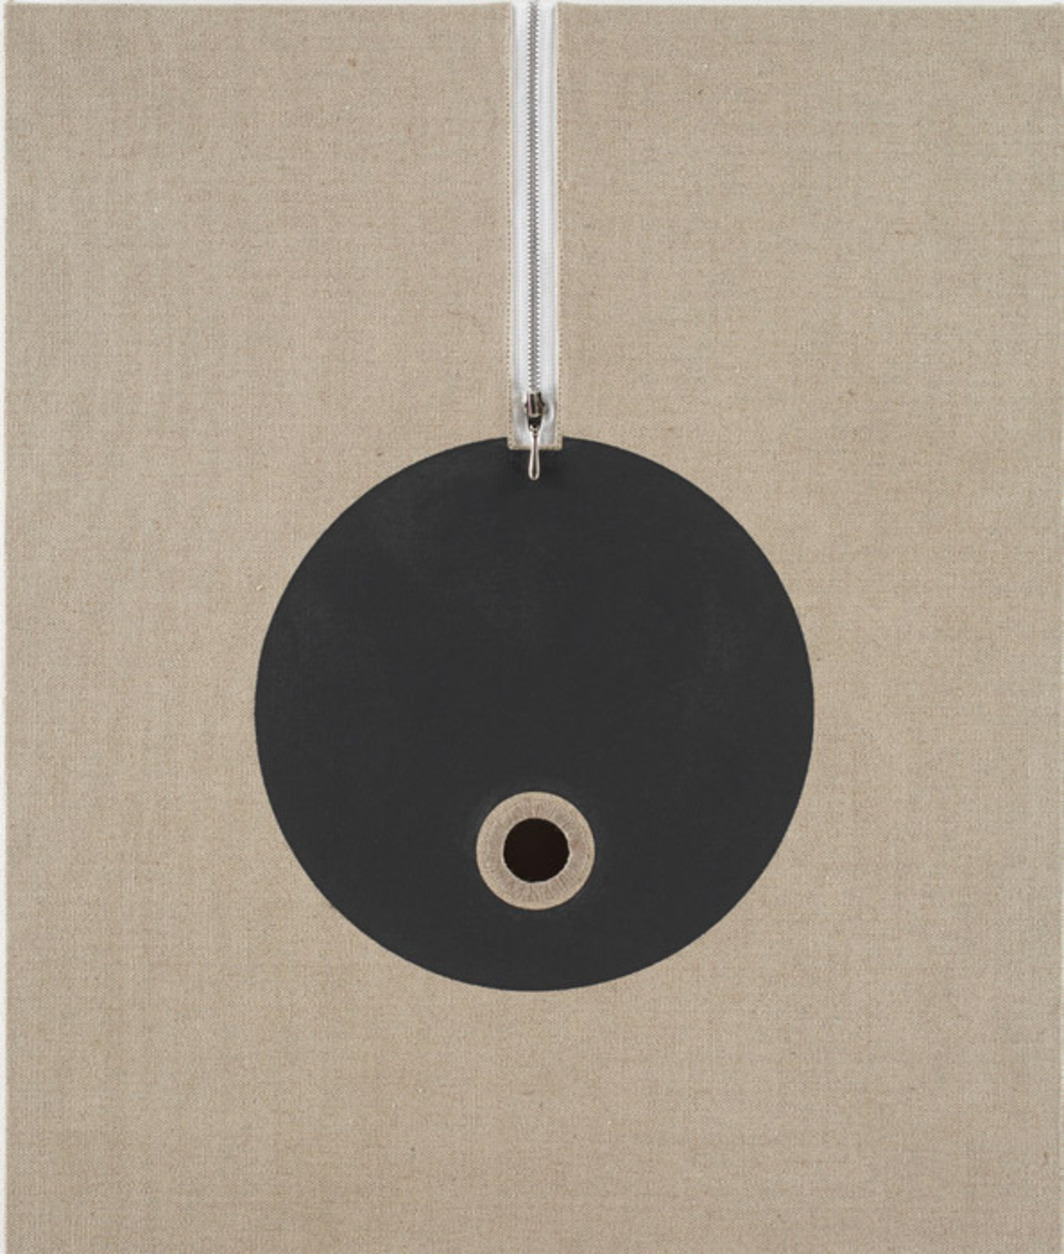 "Donald Moffett, Lot 081907 (IOo), 2007, oil, cotton, aluminum, rabbit-skin glue, and polyvinyl acetate on linen, 24 x 20""."